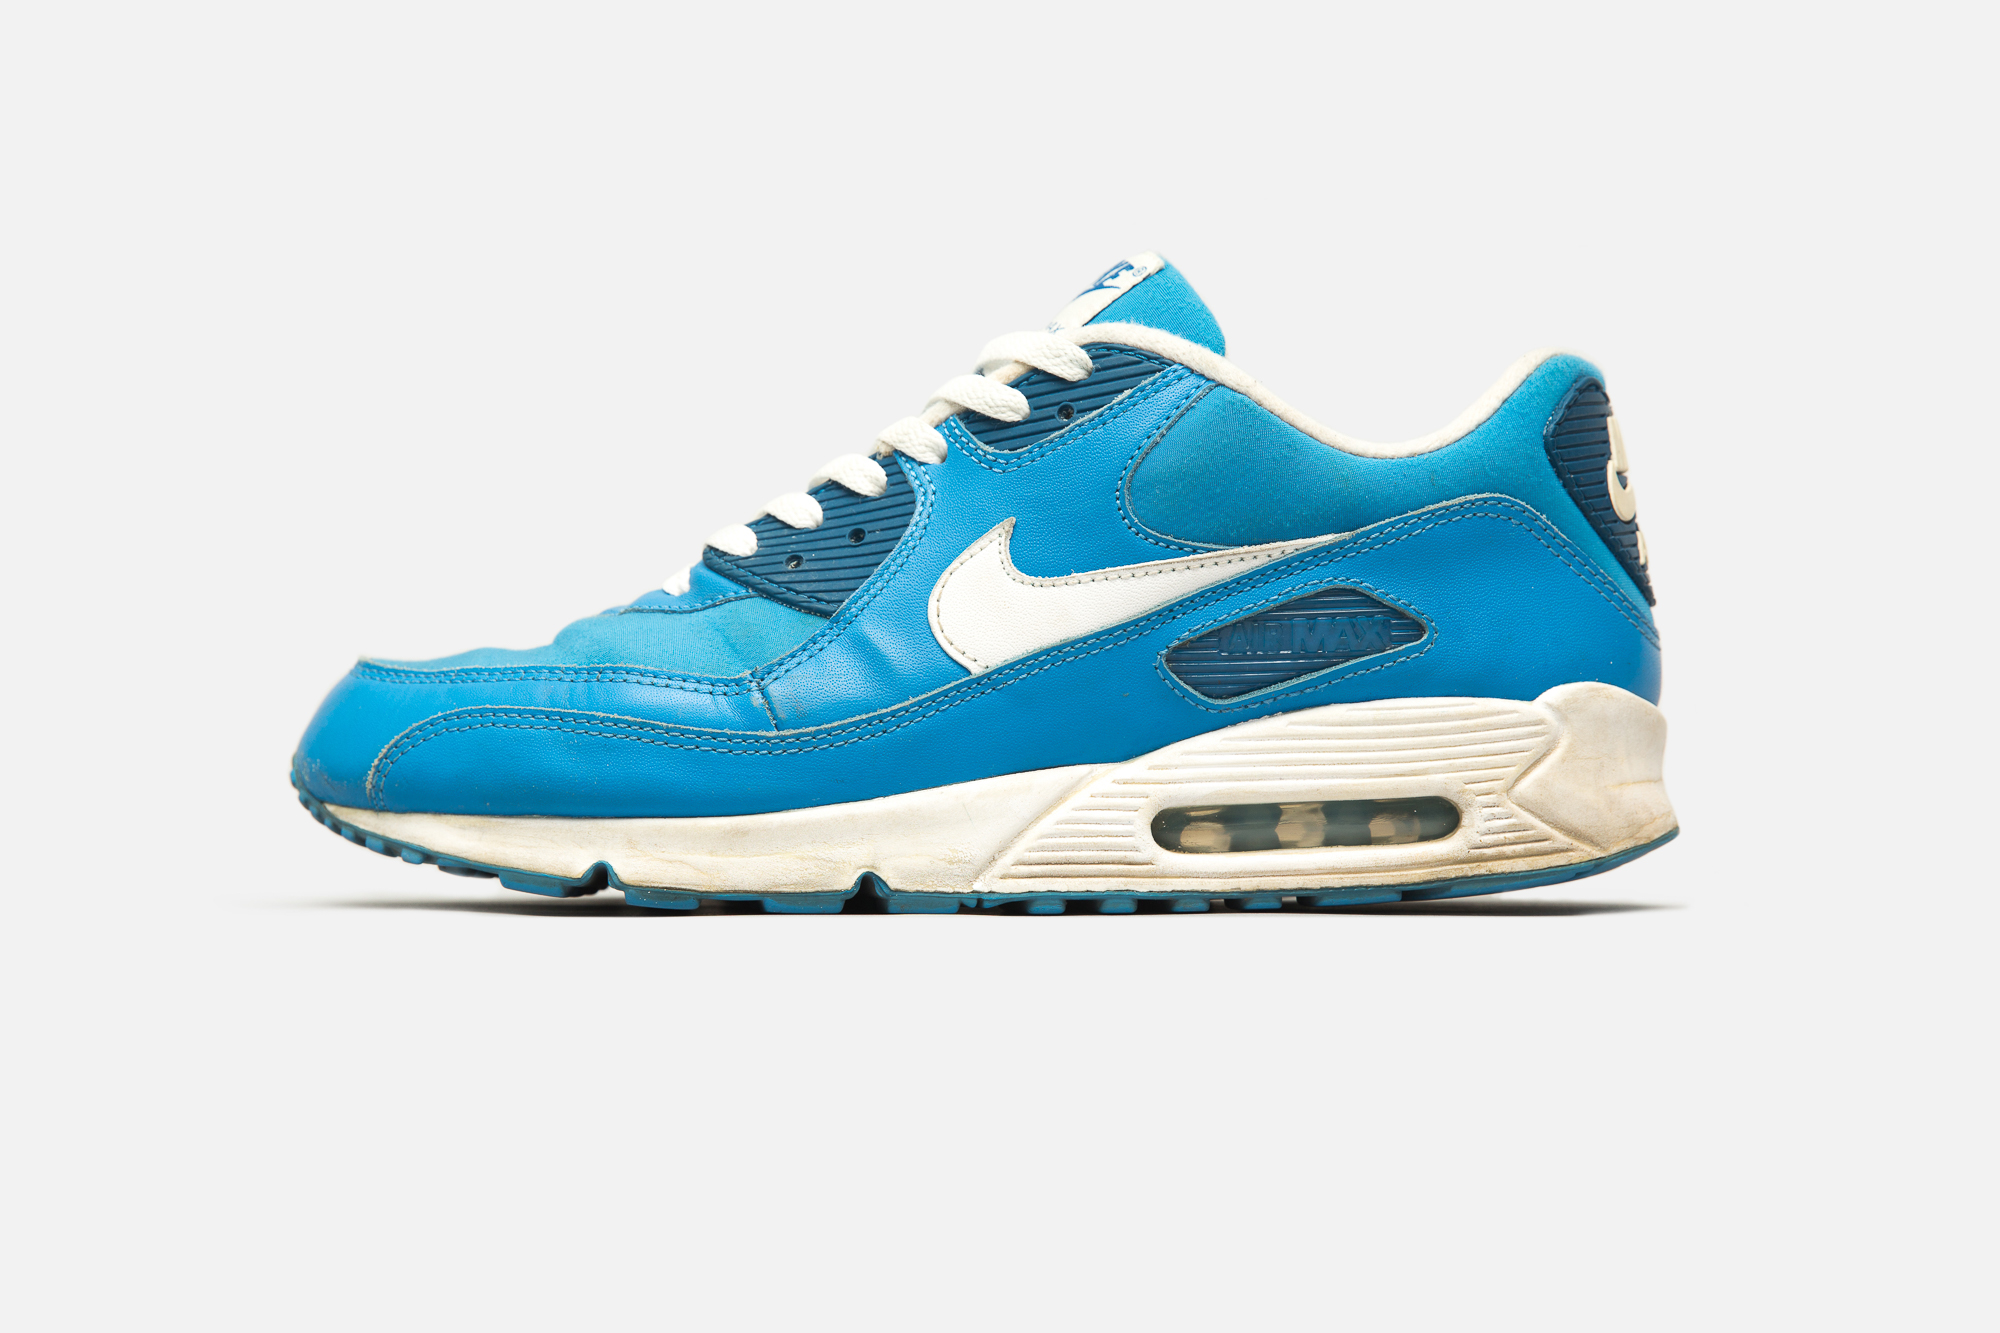 sports shoes d2b5a 2158b size? HQ Lock-Up: Nike Air Max Archive - size? blog